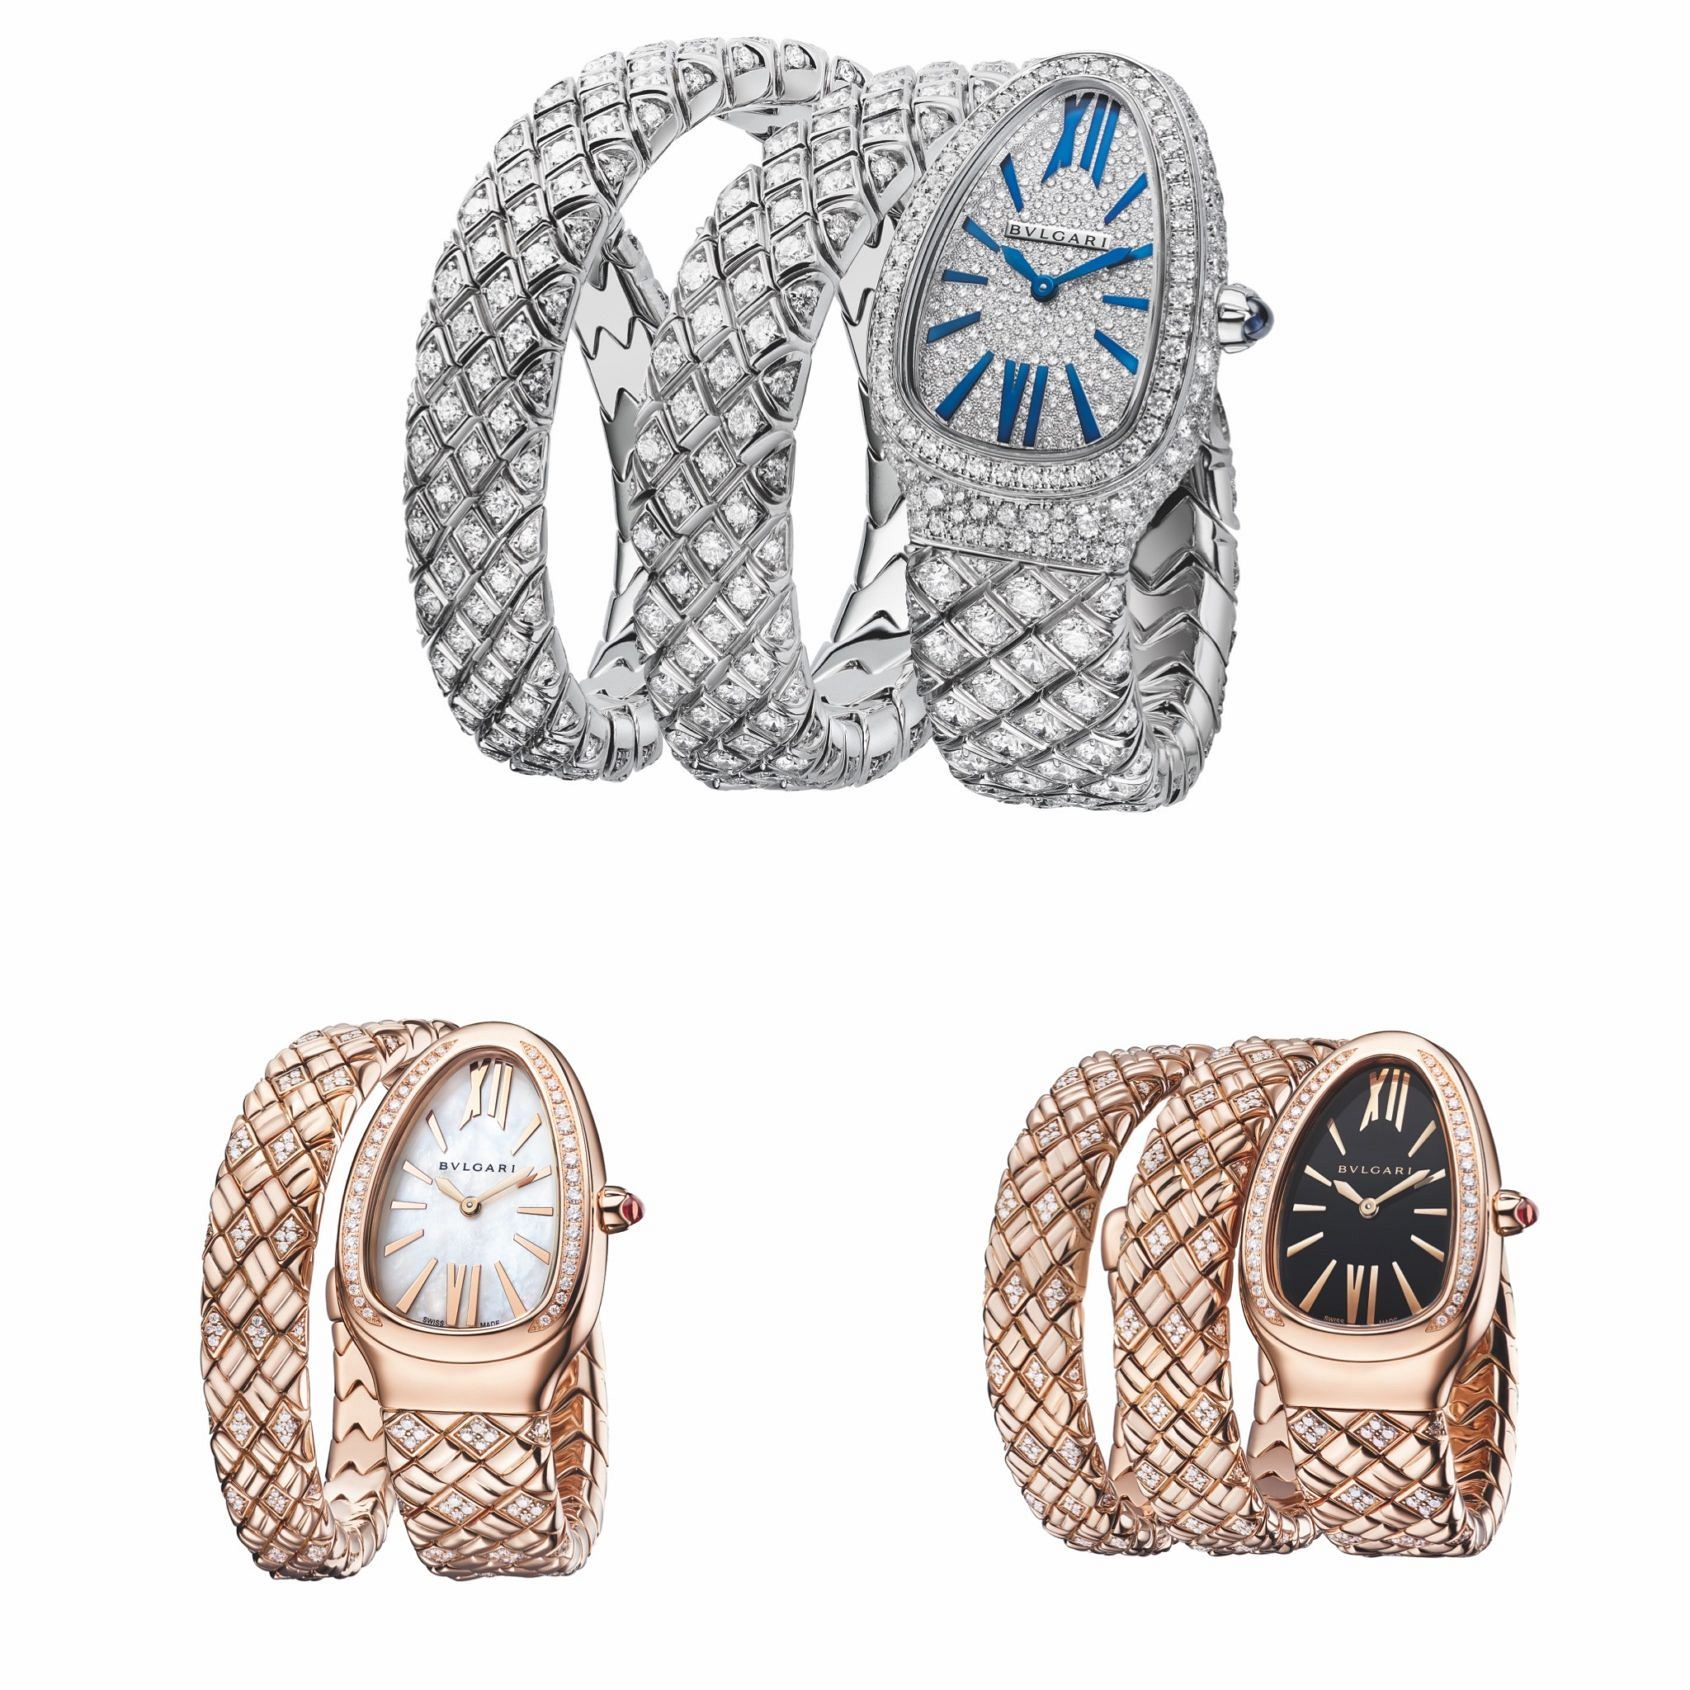 INTRODUCING: Bulgari slithers into 2021 with a trio of Serpenti Spiga watches